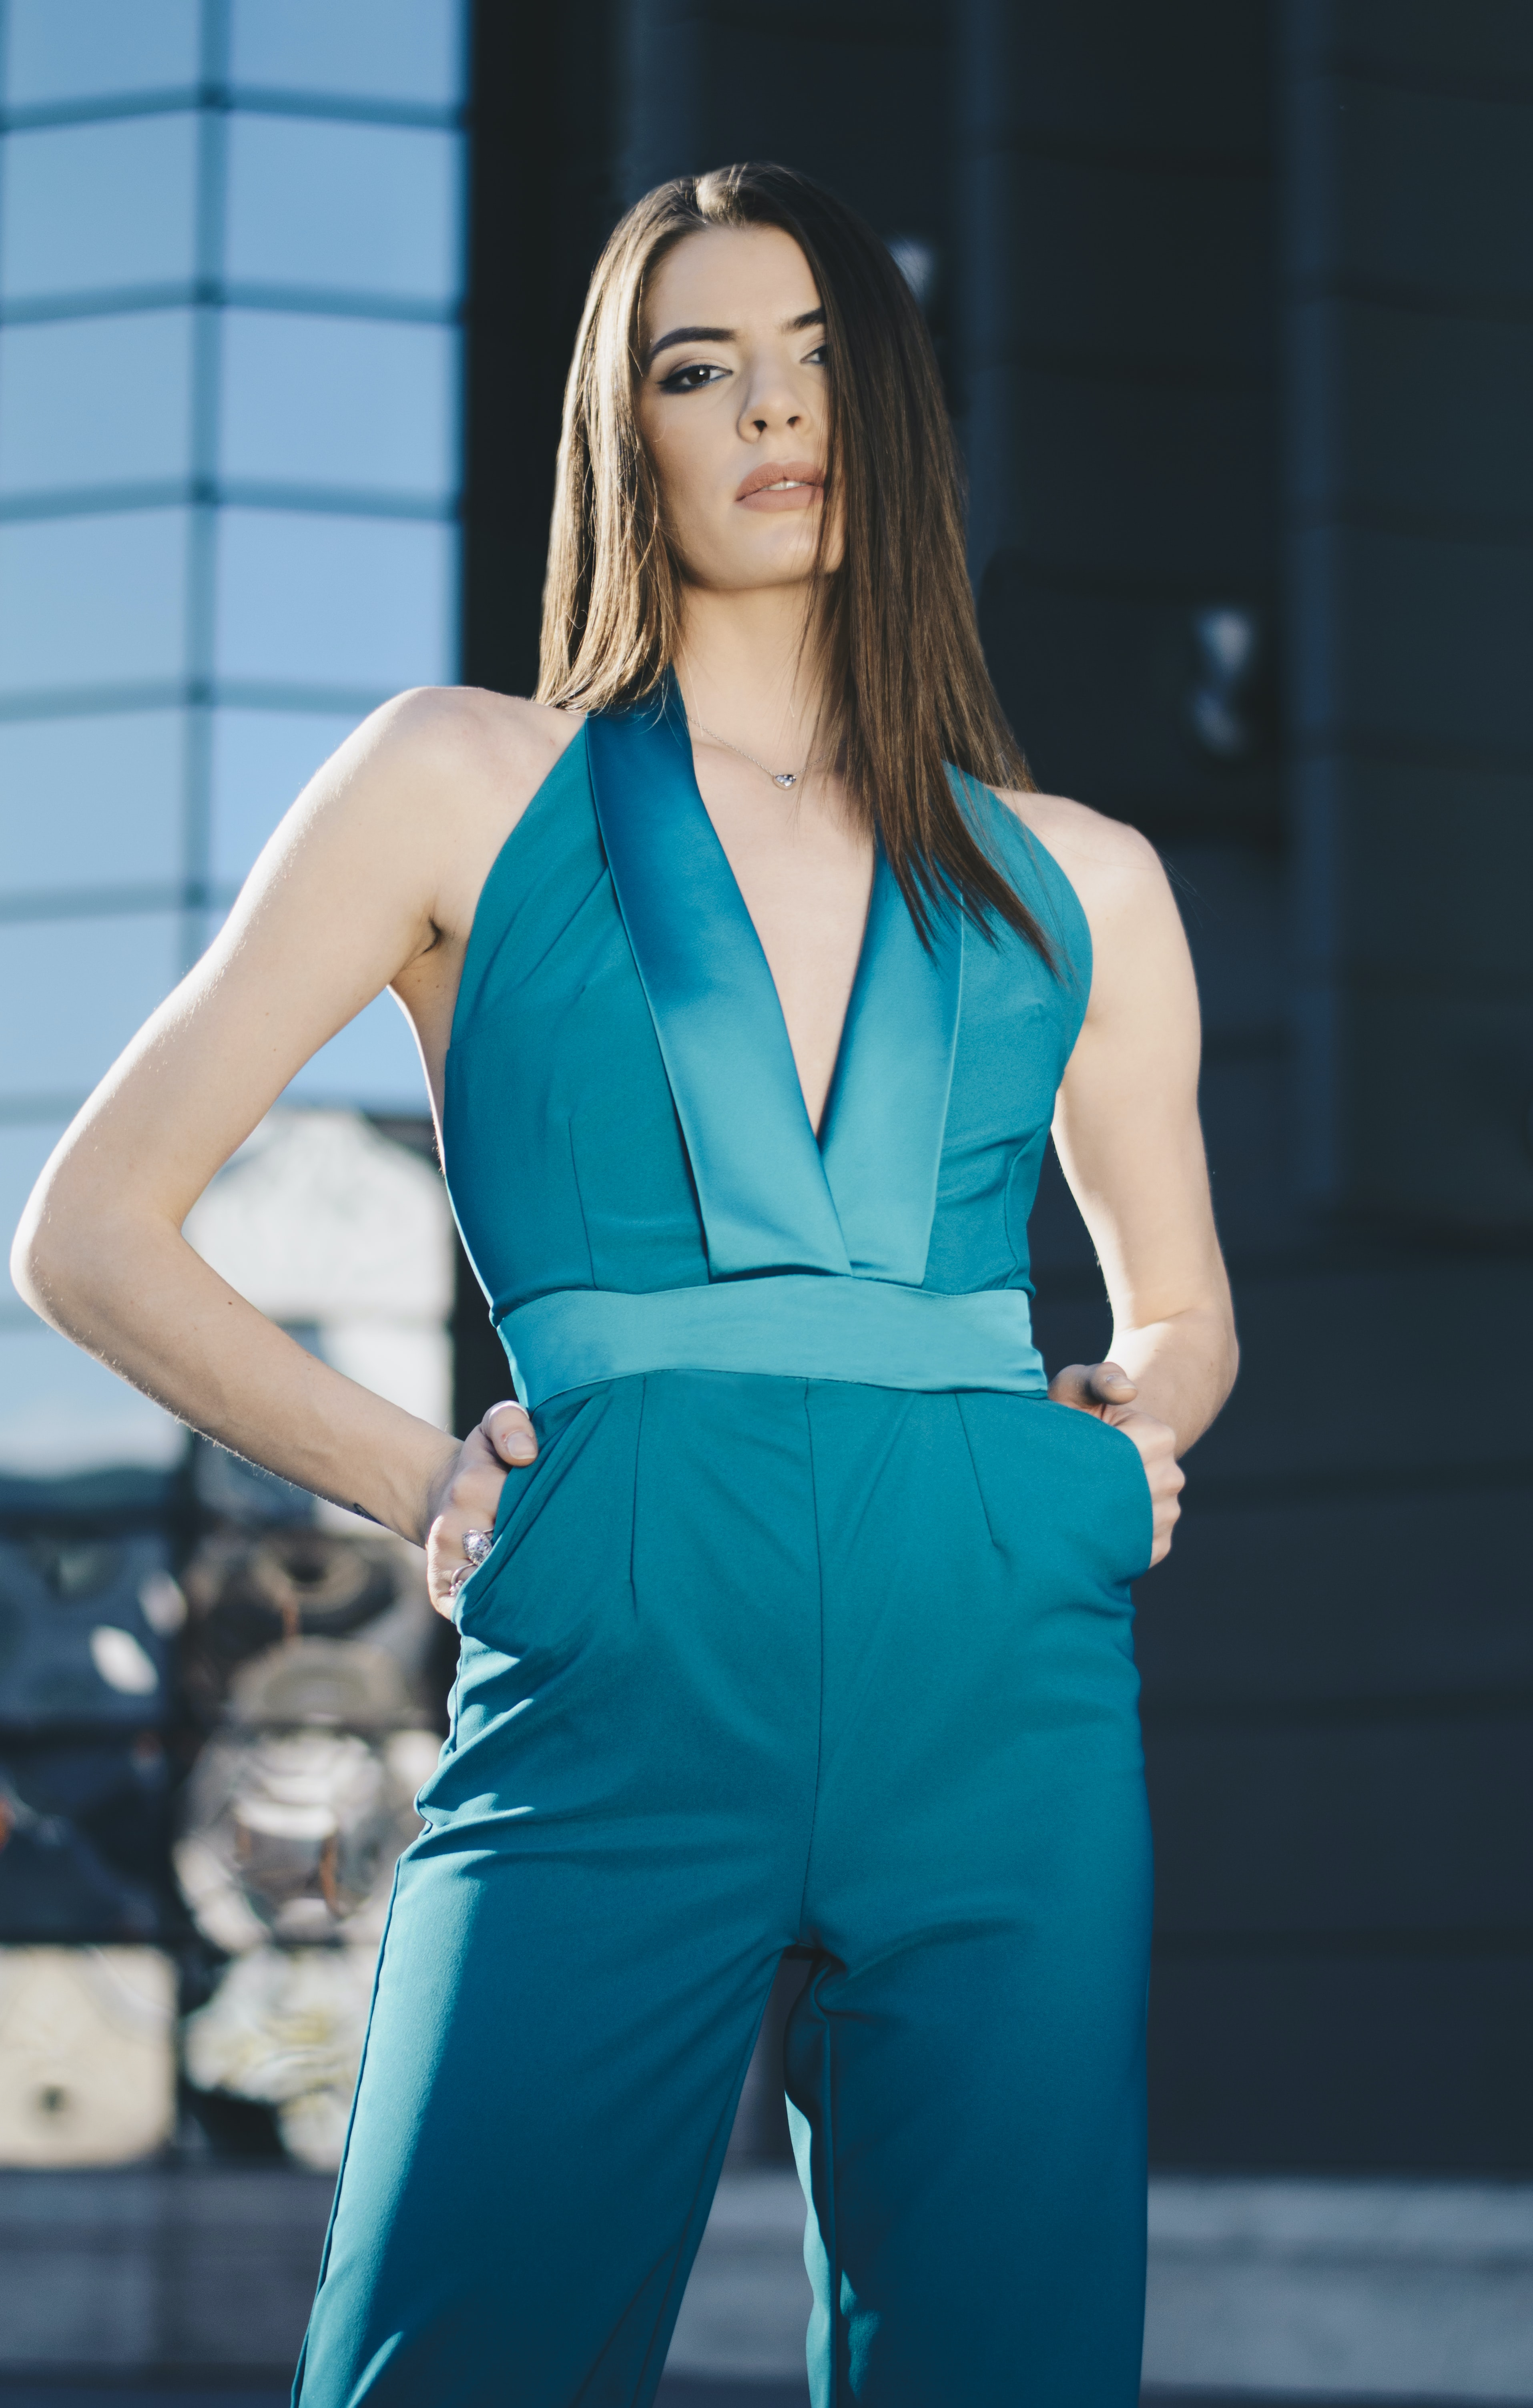 A fashion model wearing a blue structured jumpsuit